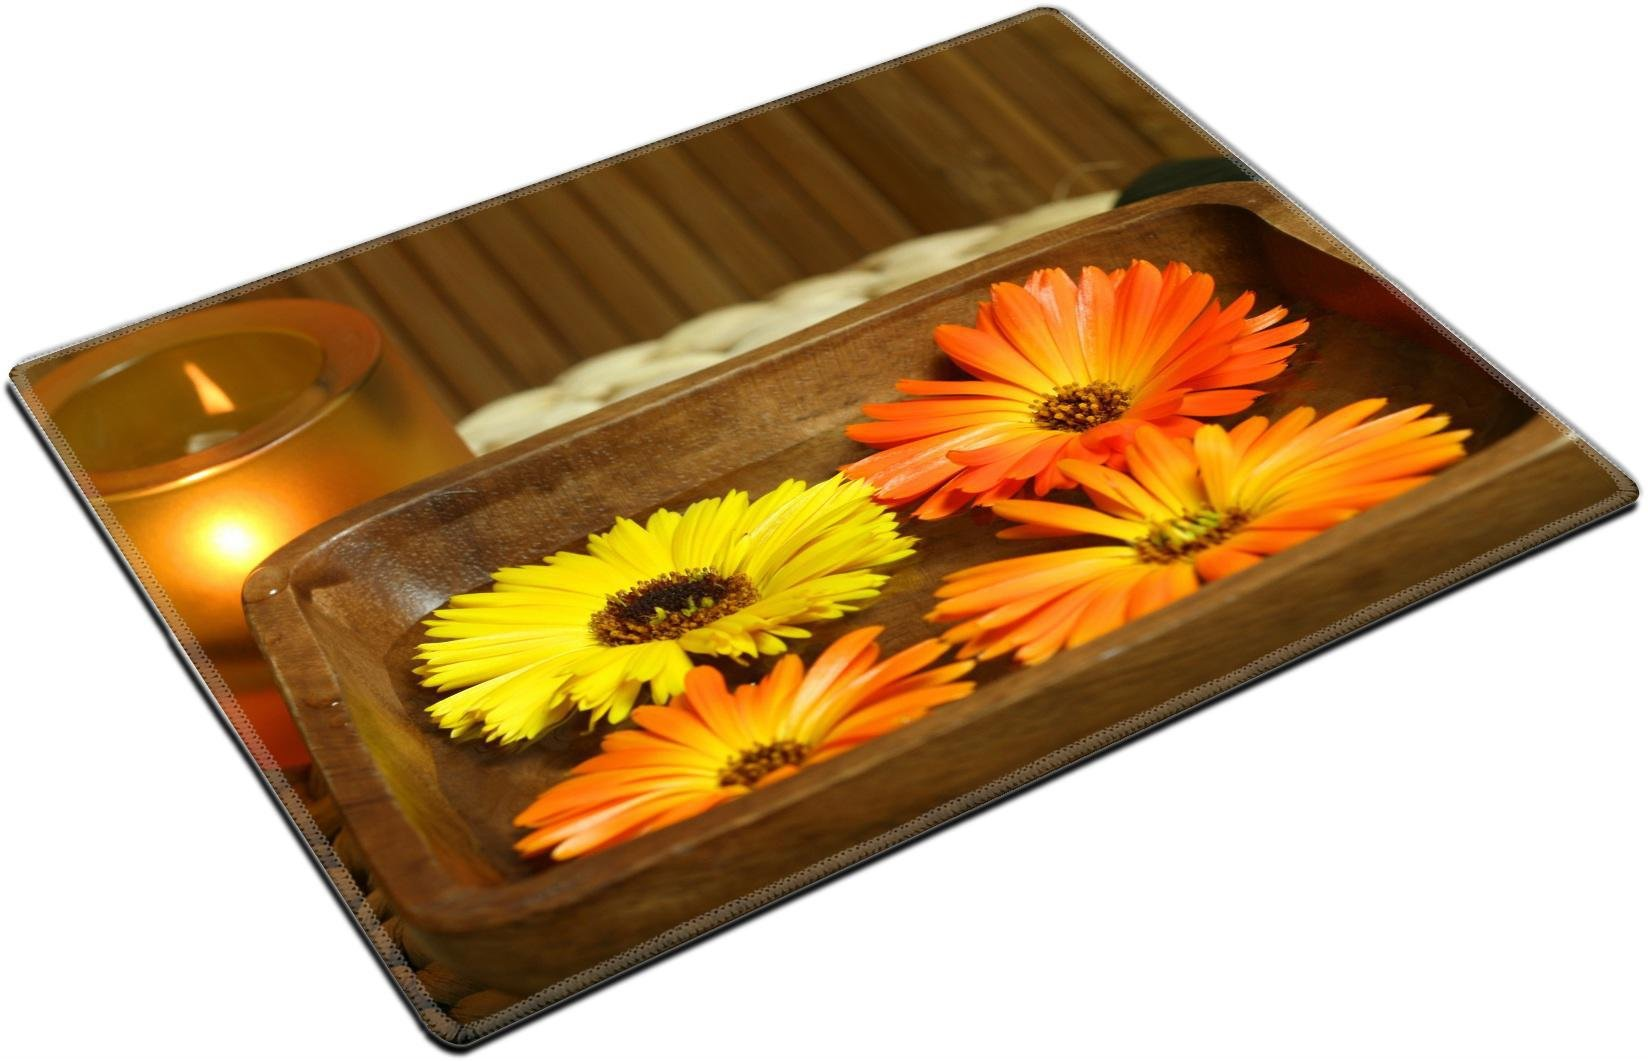 MSD Place Mat Non-Slip Natural Rubber Desk Pads Design: 10353816 Spa Treatment for Beauty and Relax Candle and Calendula Flowers